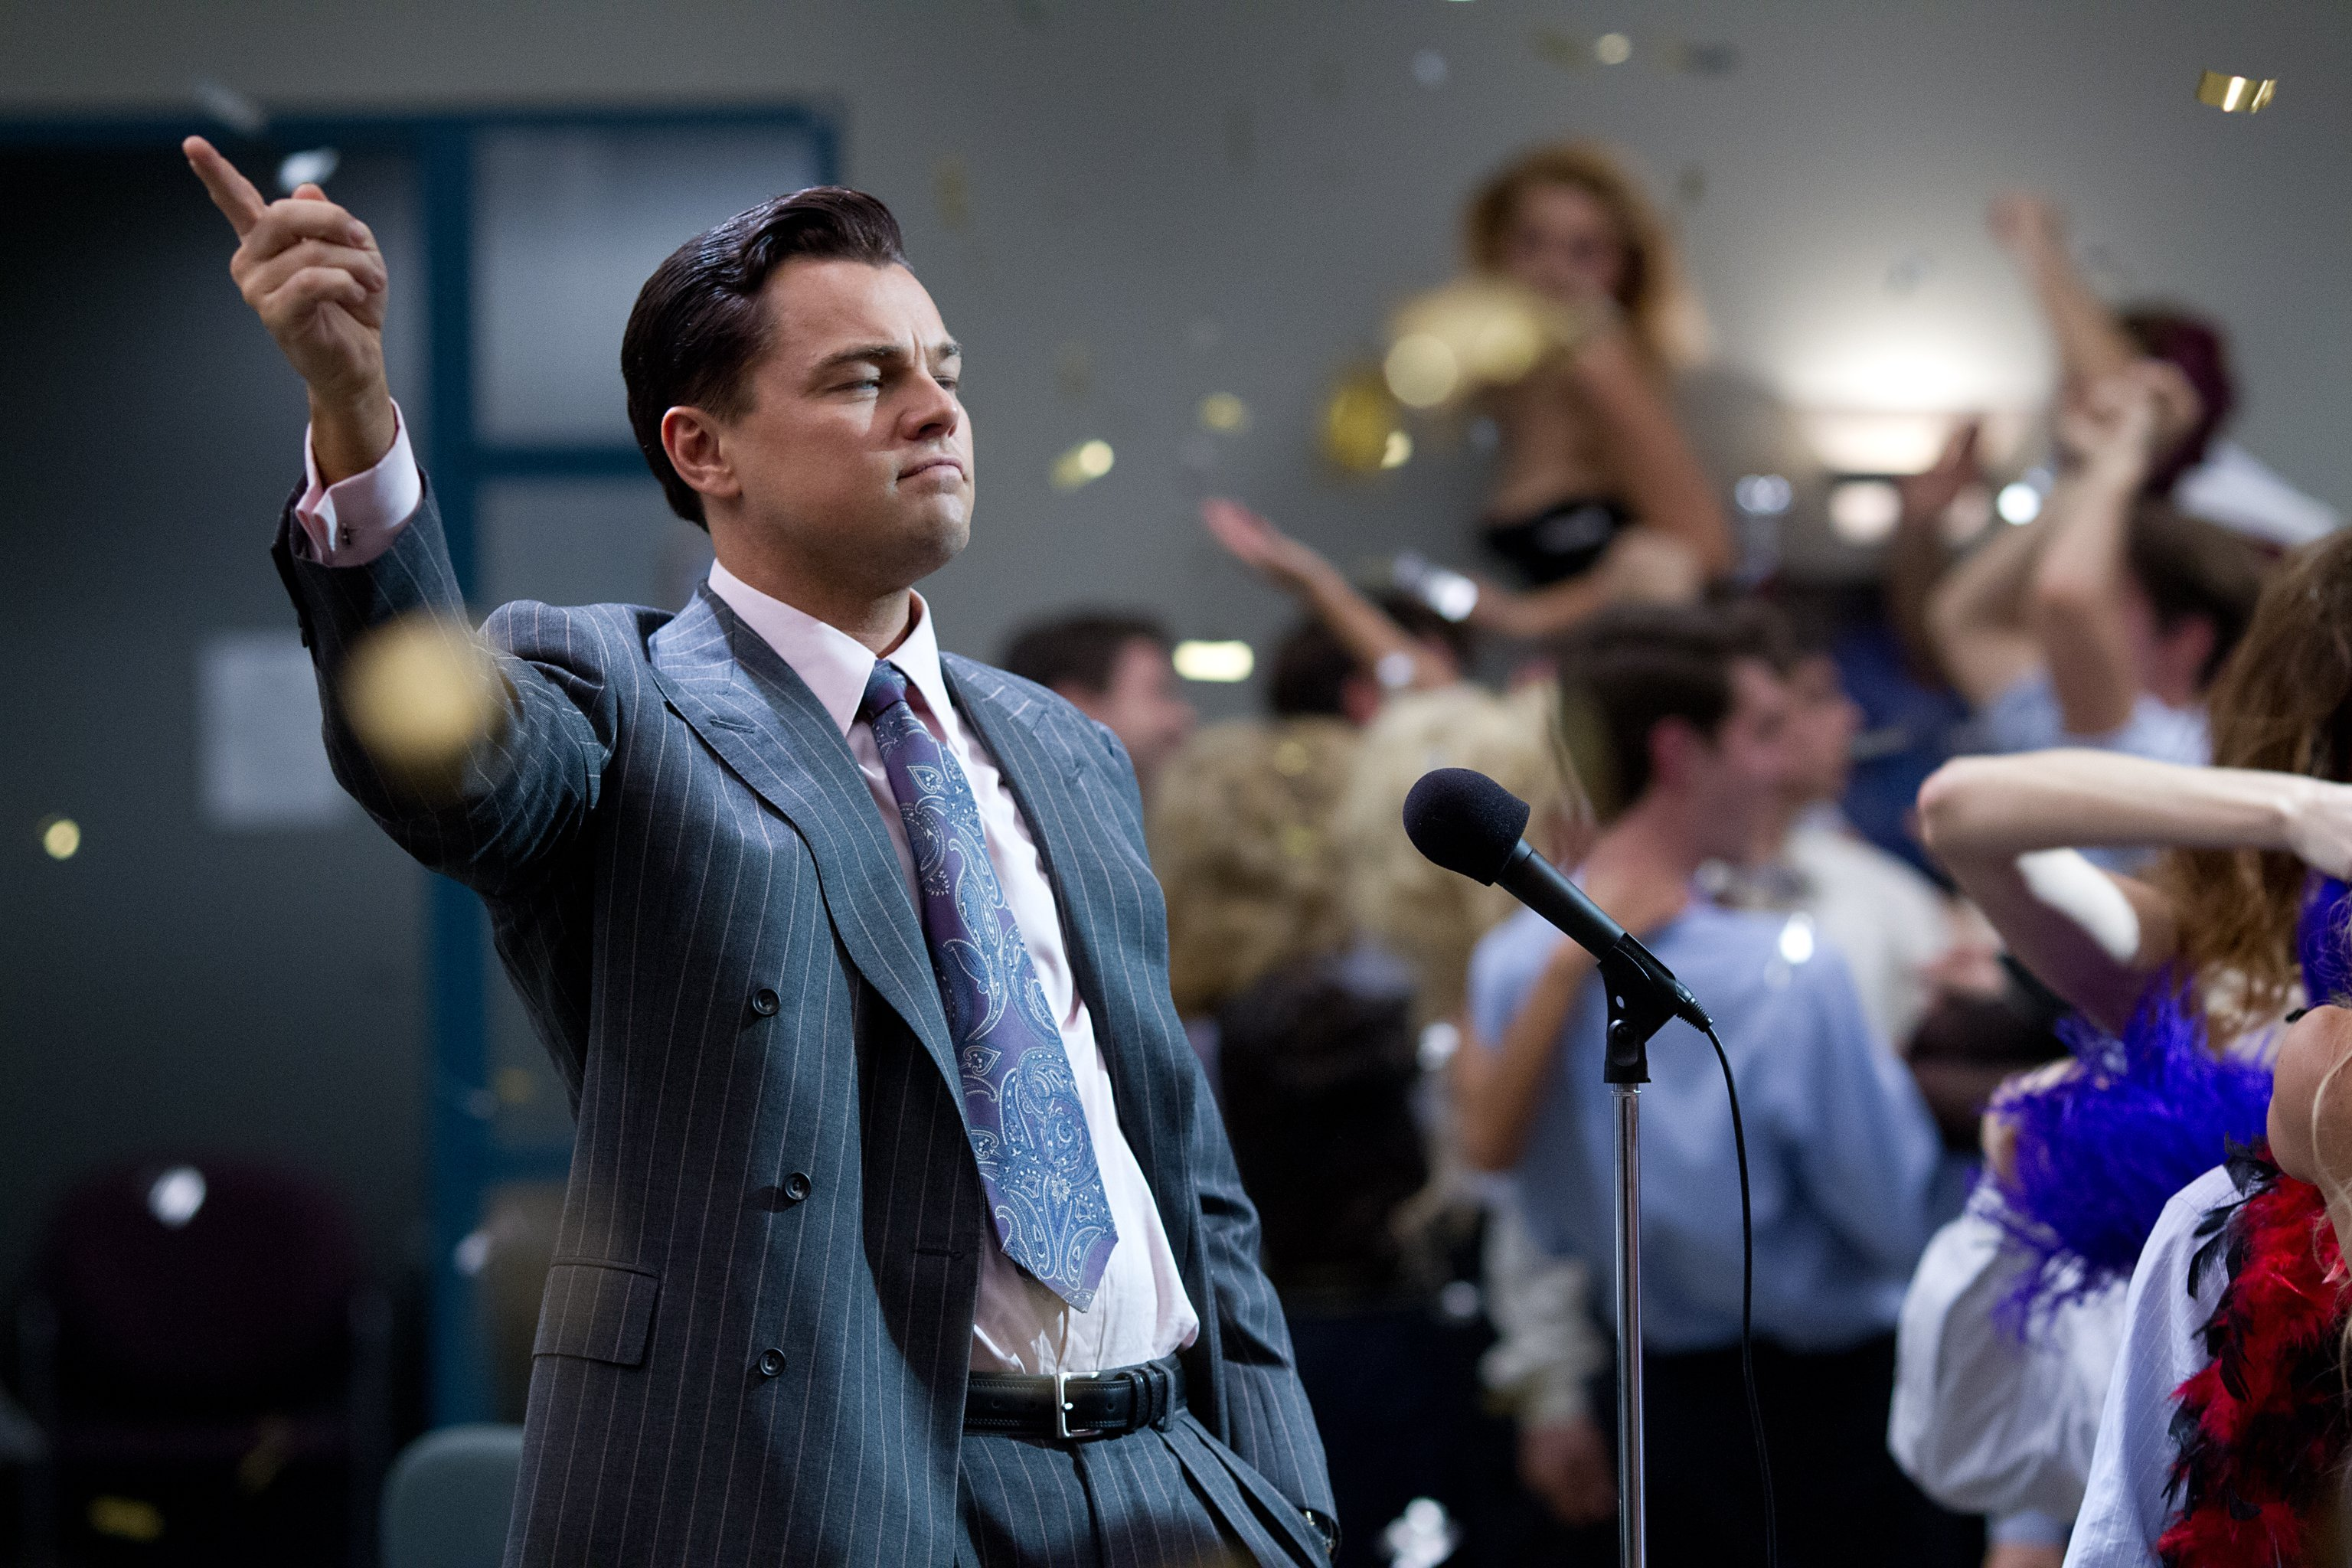 Wolf of Wall Street film company to pay 60M settlement